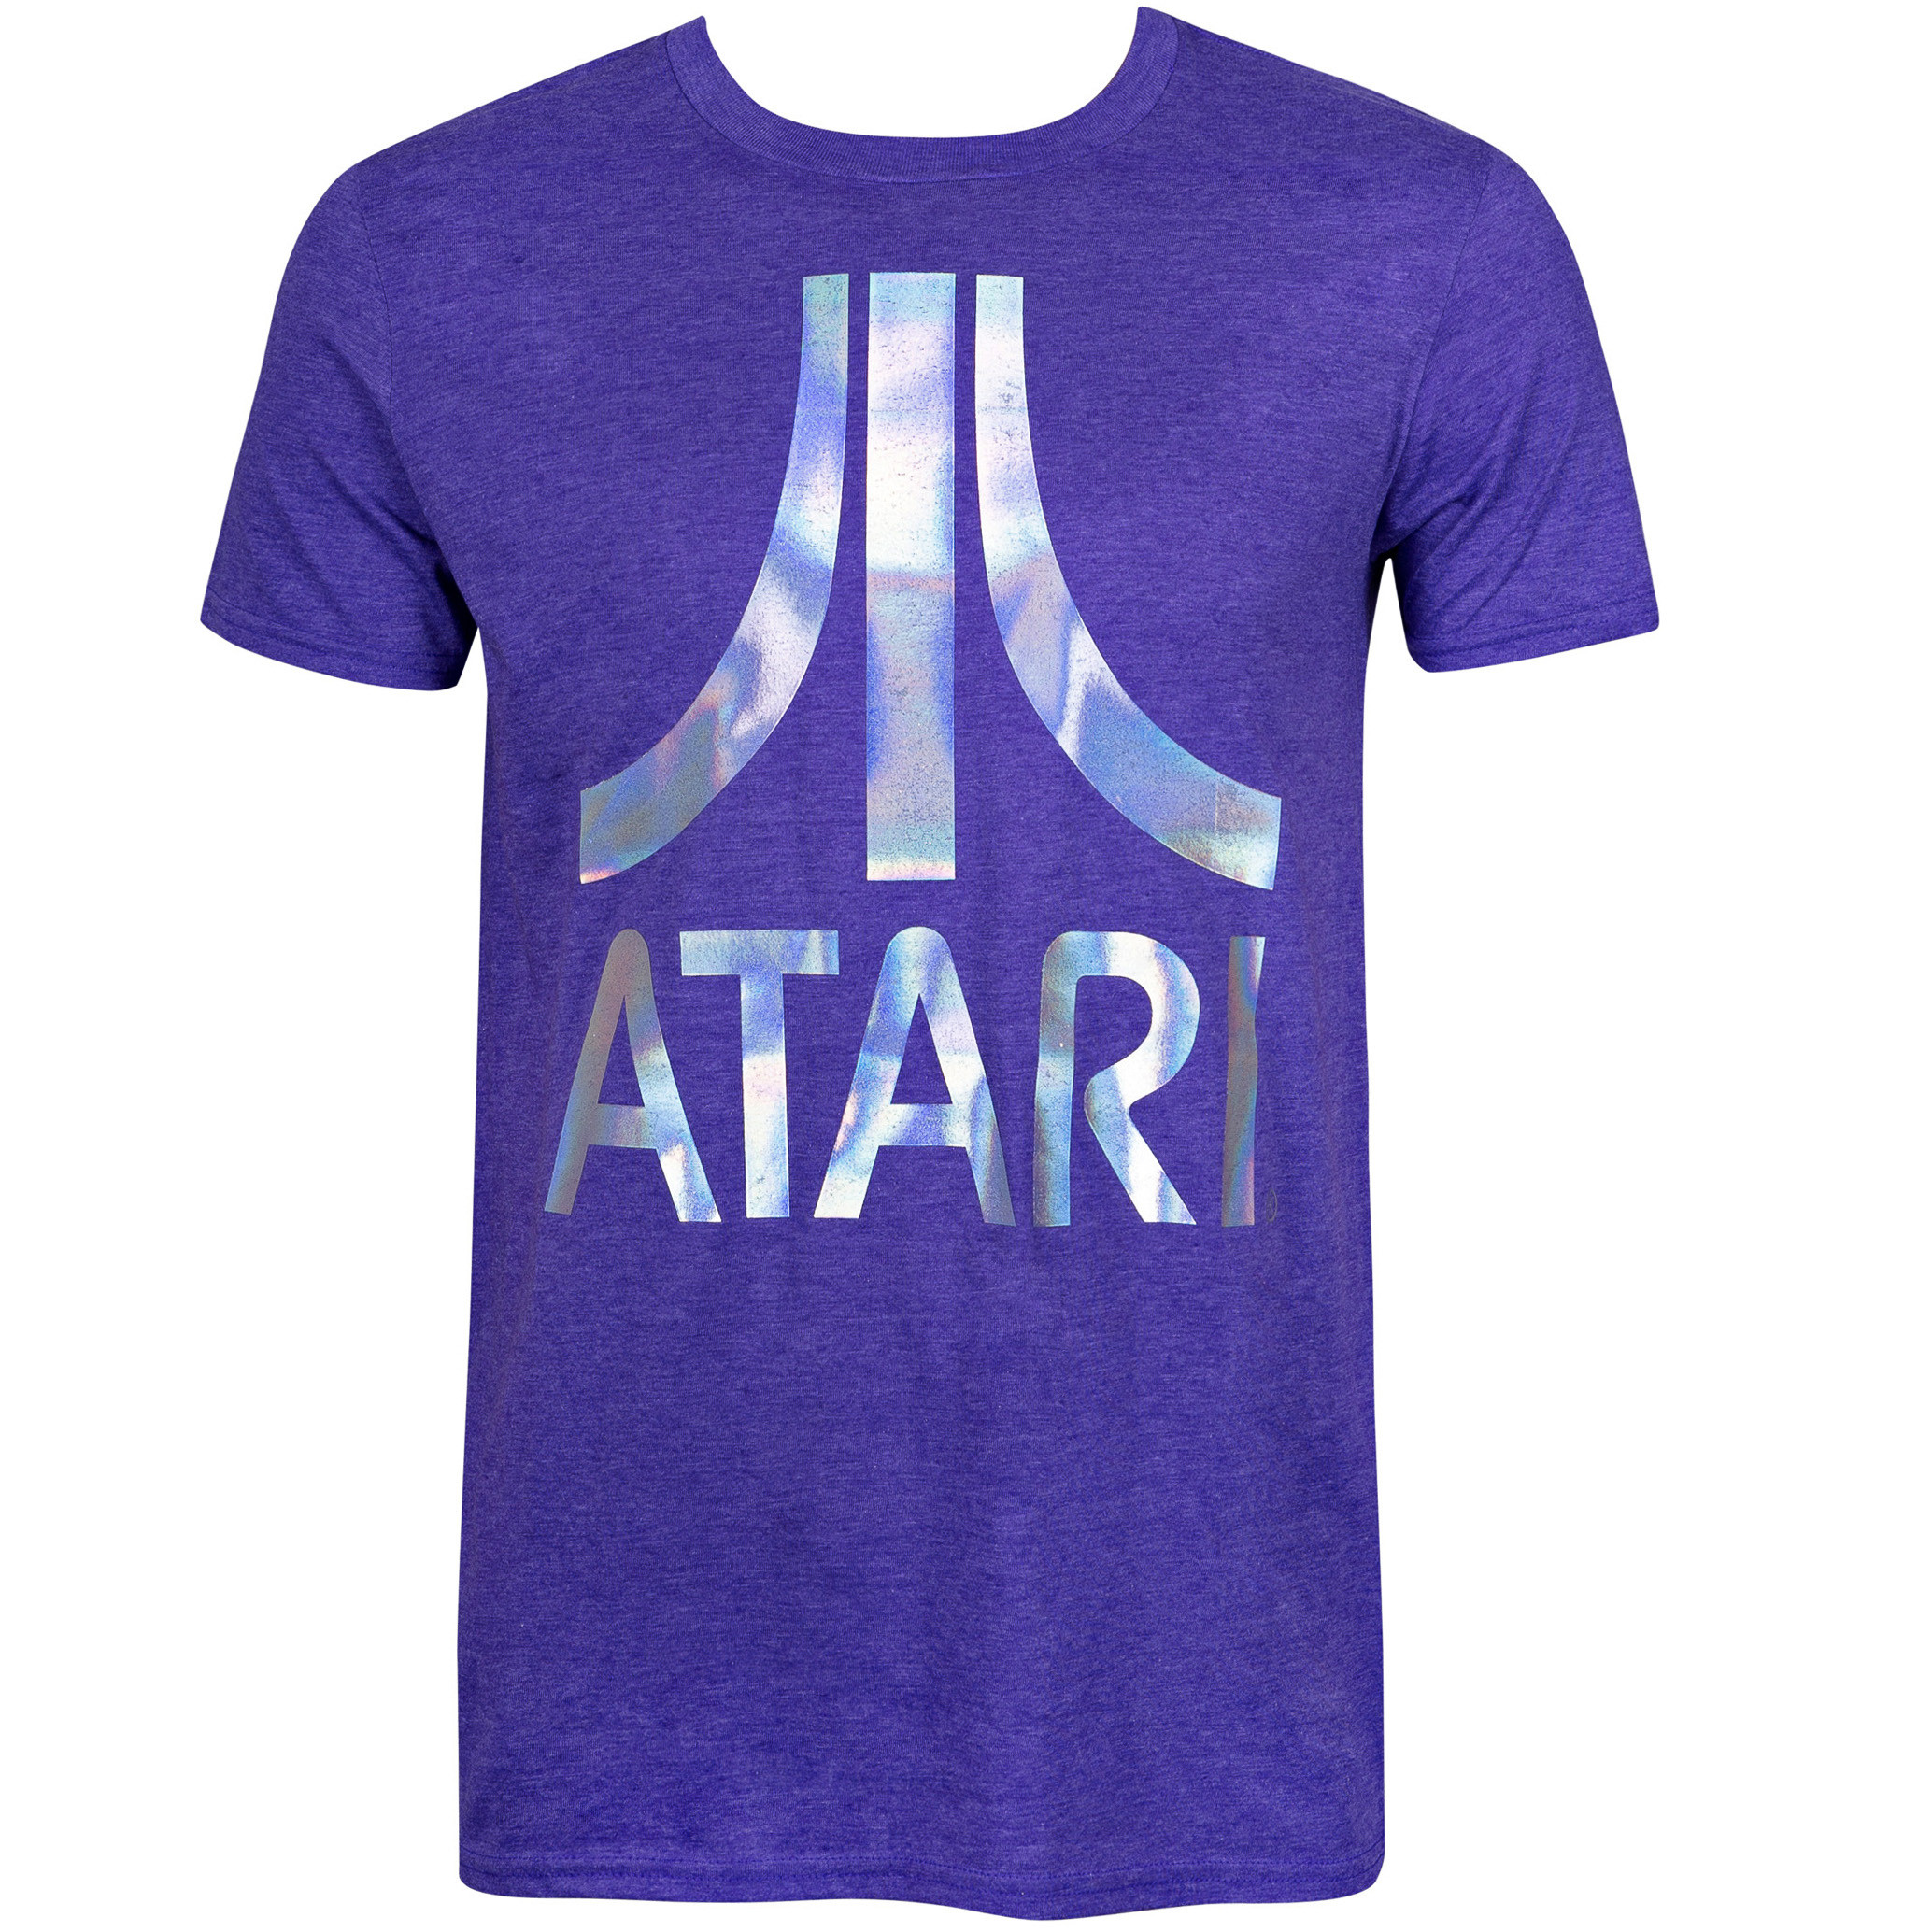 Atari Foil Logo Purple Tee Shirt